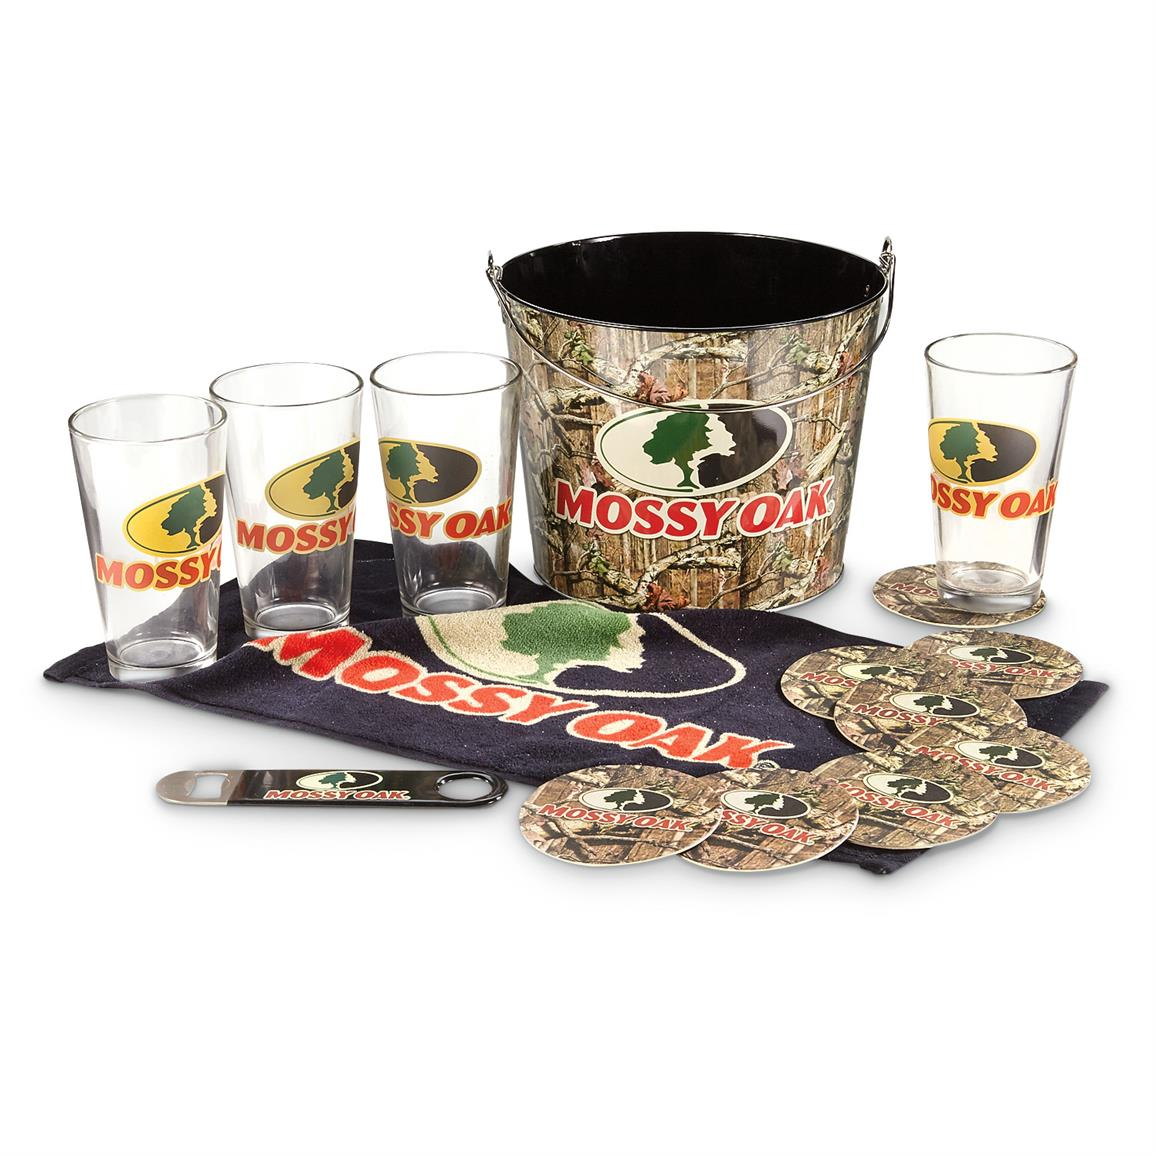 Mossy Oak Pint Glass Gift Set with Bucket